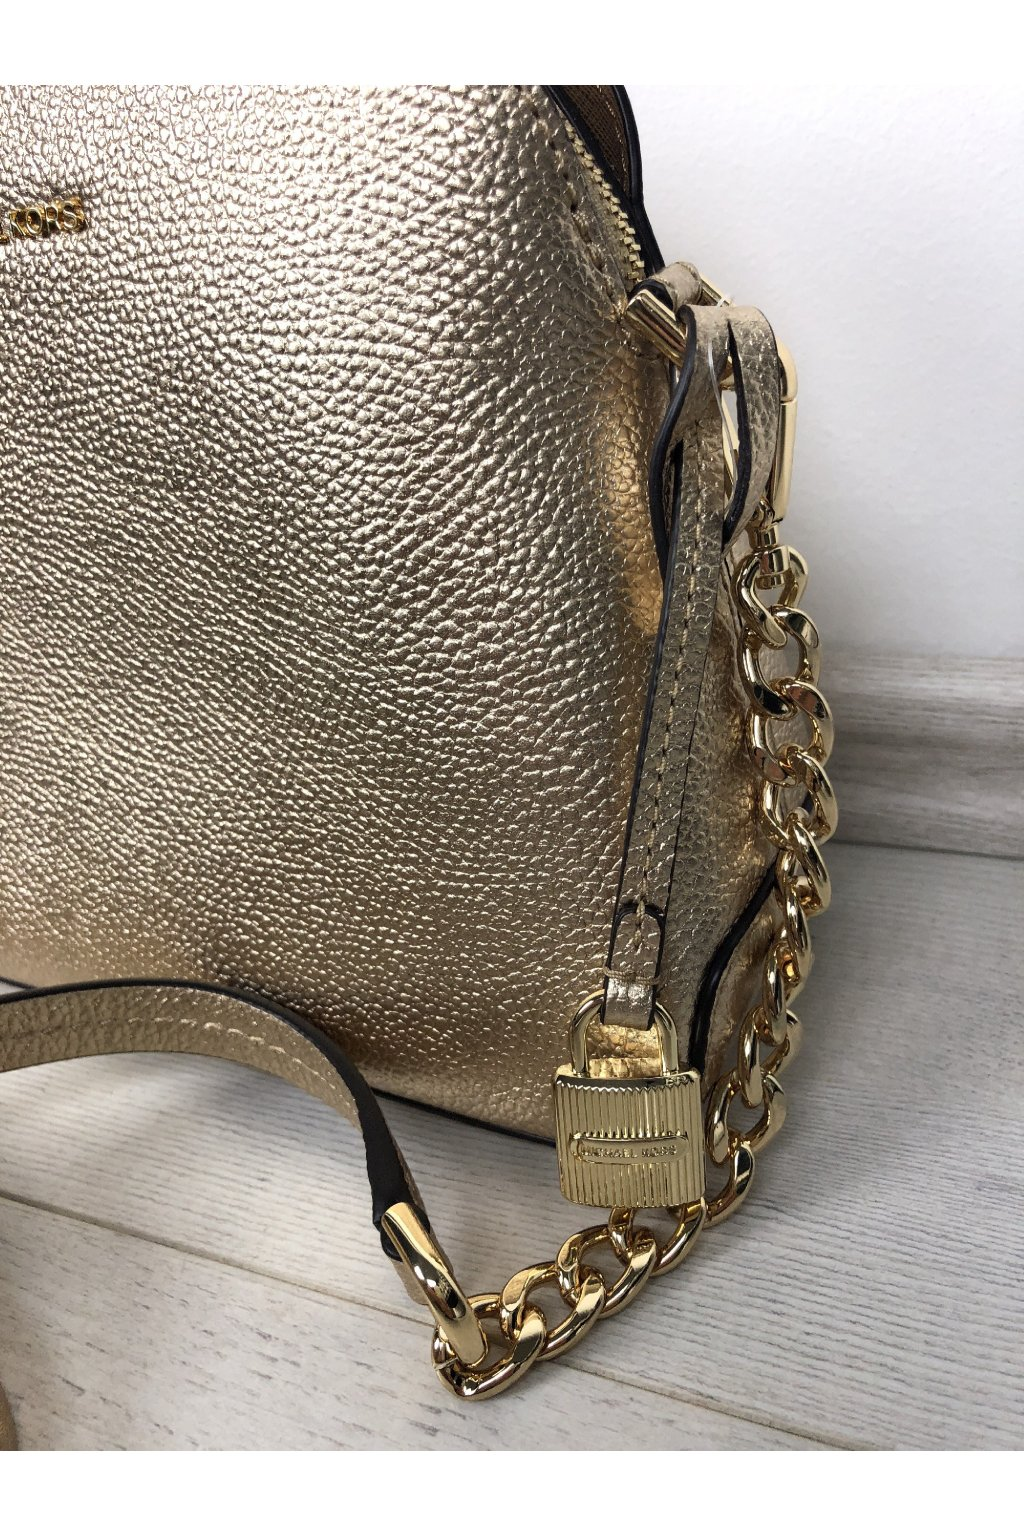 ... 1 · crossbody michael kors mercer mettalic leather dome pale gold eshopat  cz 2 ... a1551523d96